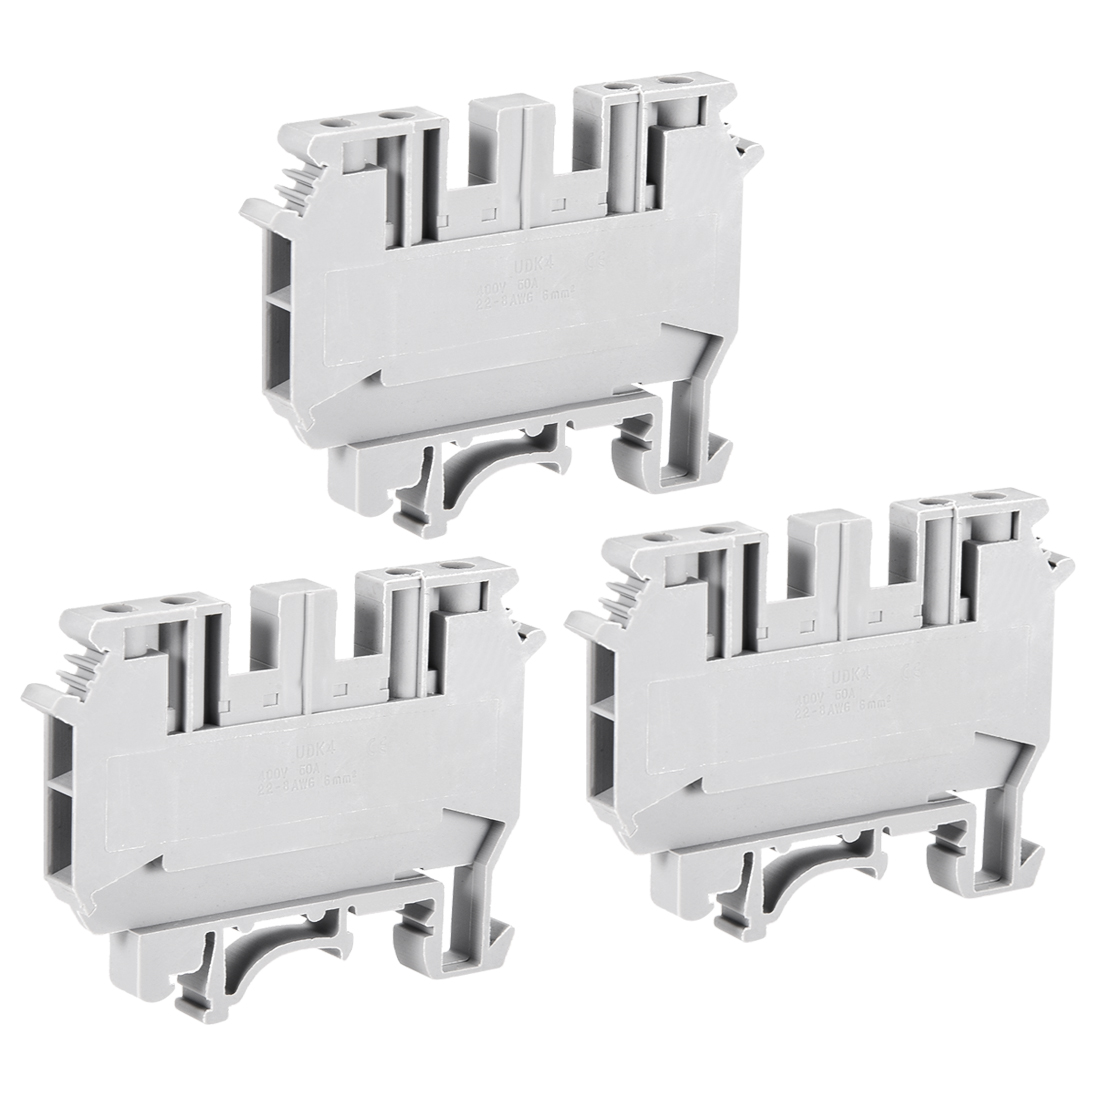 UDK4 DIN Rail Terminal Block Screw Clamp 400V 50A Gray for 22-8 AWG 3 Pcs